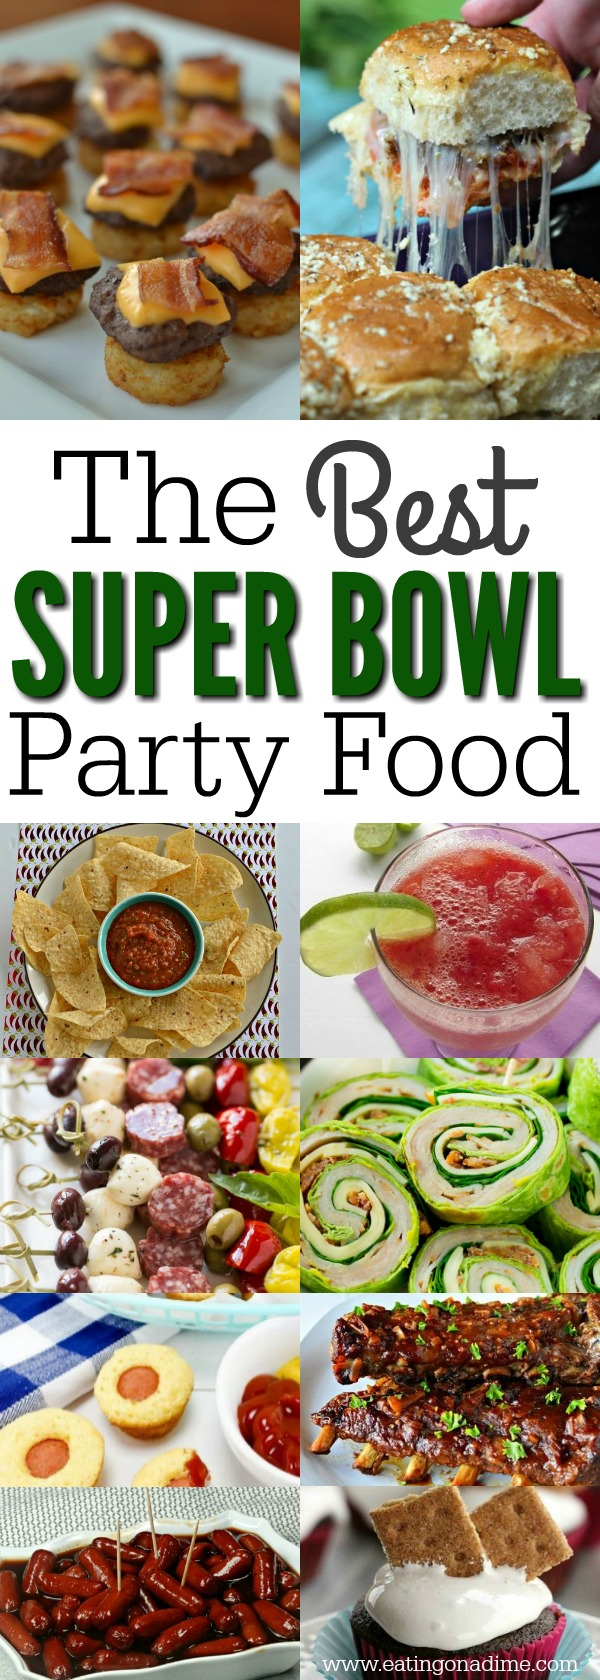 Super Bowl Party Food 75 Super Bowl Recipes Everyone Will Love